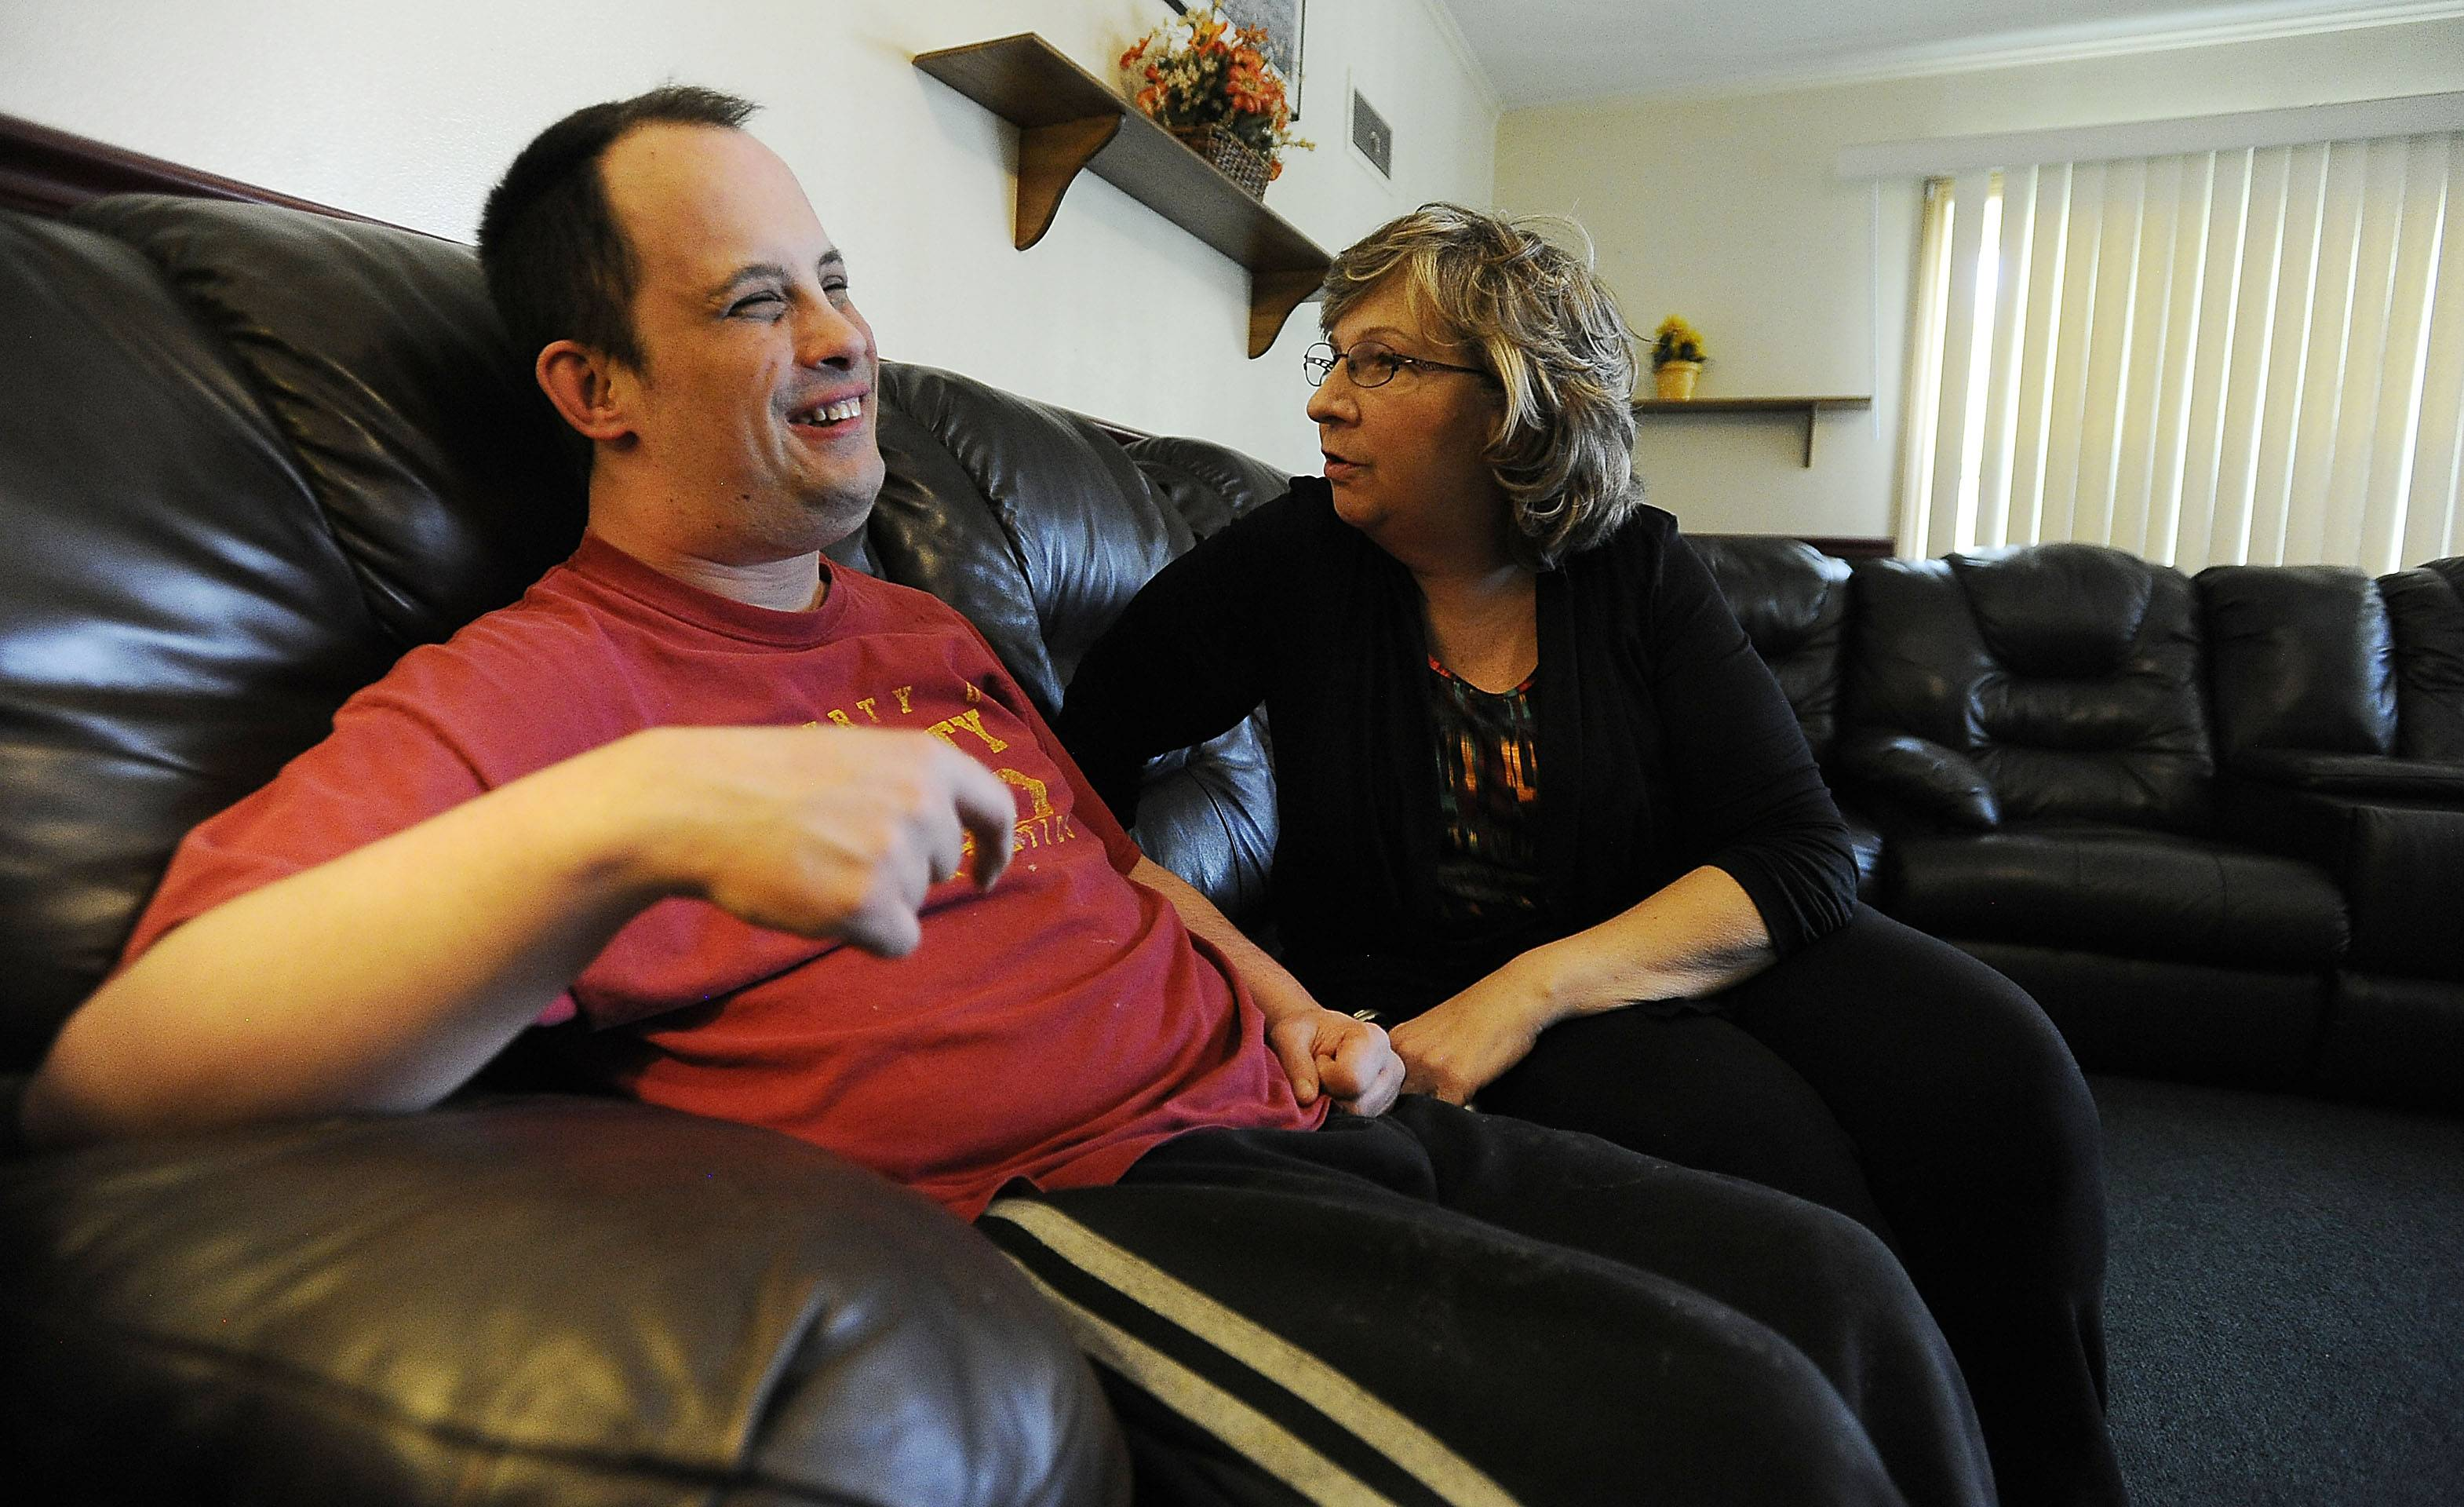 Caregiver Neoma Spencer of Hoffman Estates shares a moment with Michael Voekner at his home in Des Plaines for the disabled after he came home from work.